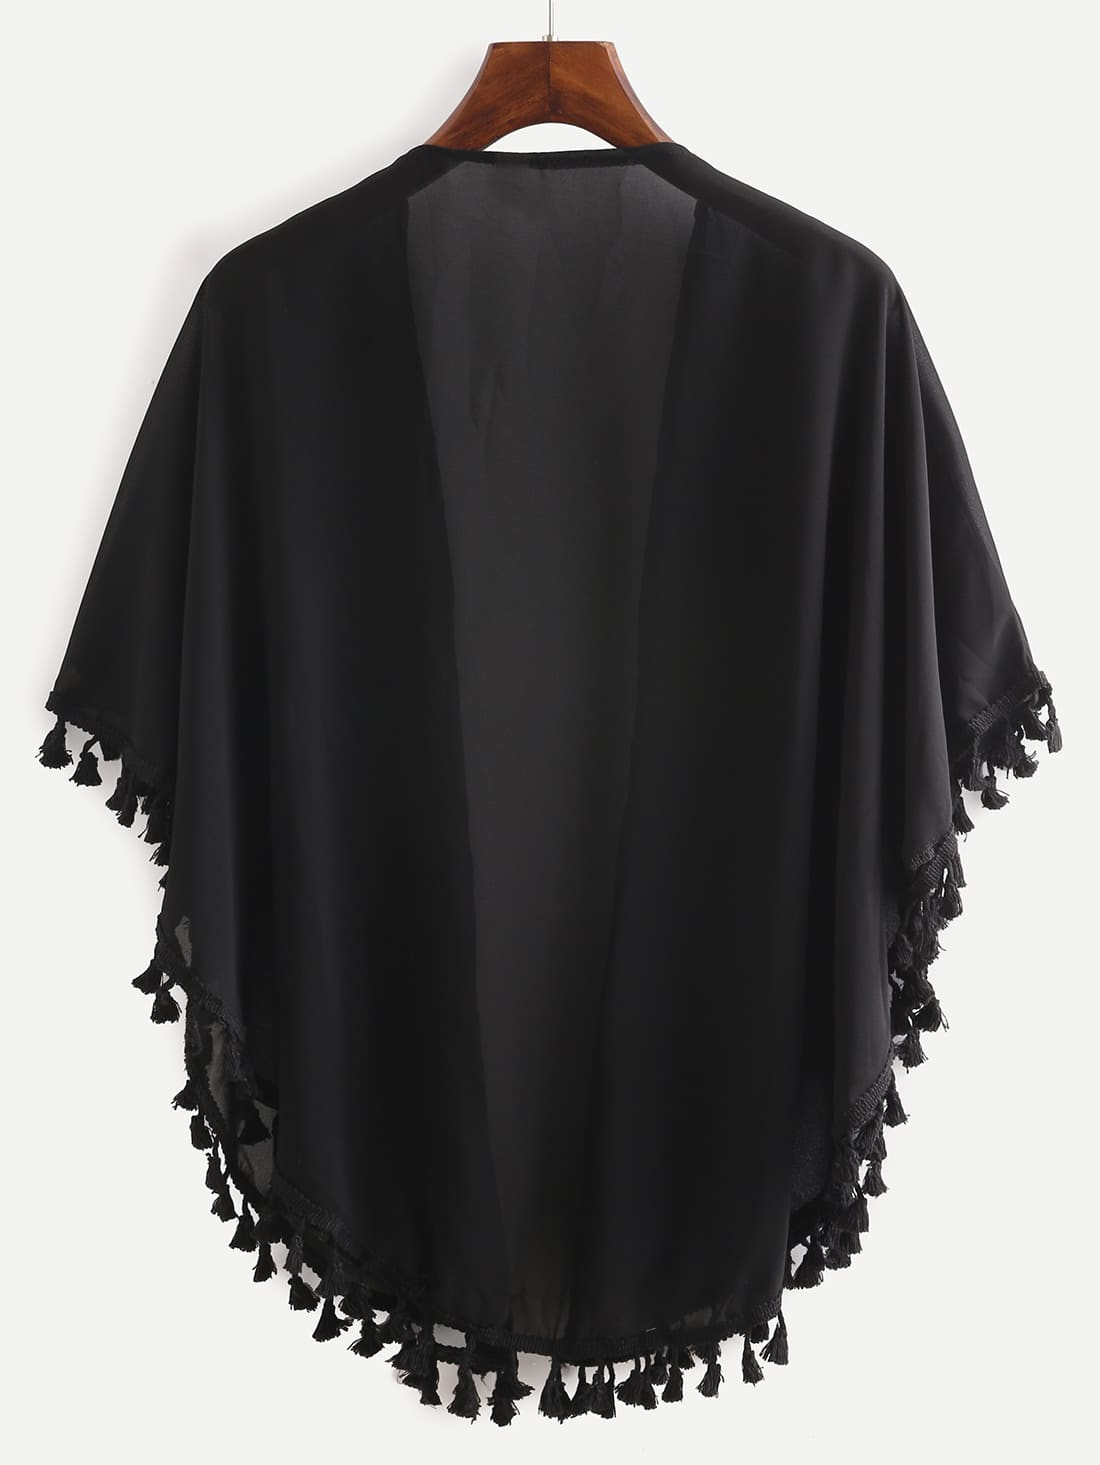 Japanese influence is evident in this sheer chiffon 3/4 length sleeved kimono-esque layering piece. I adore the cheery blossom floral print teamed up with a sheer black canvas.